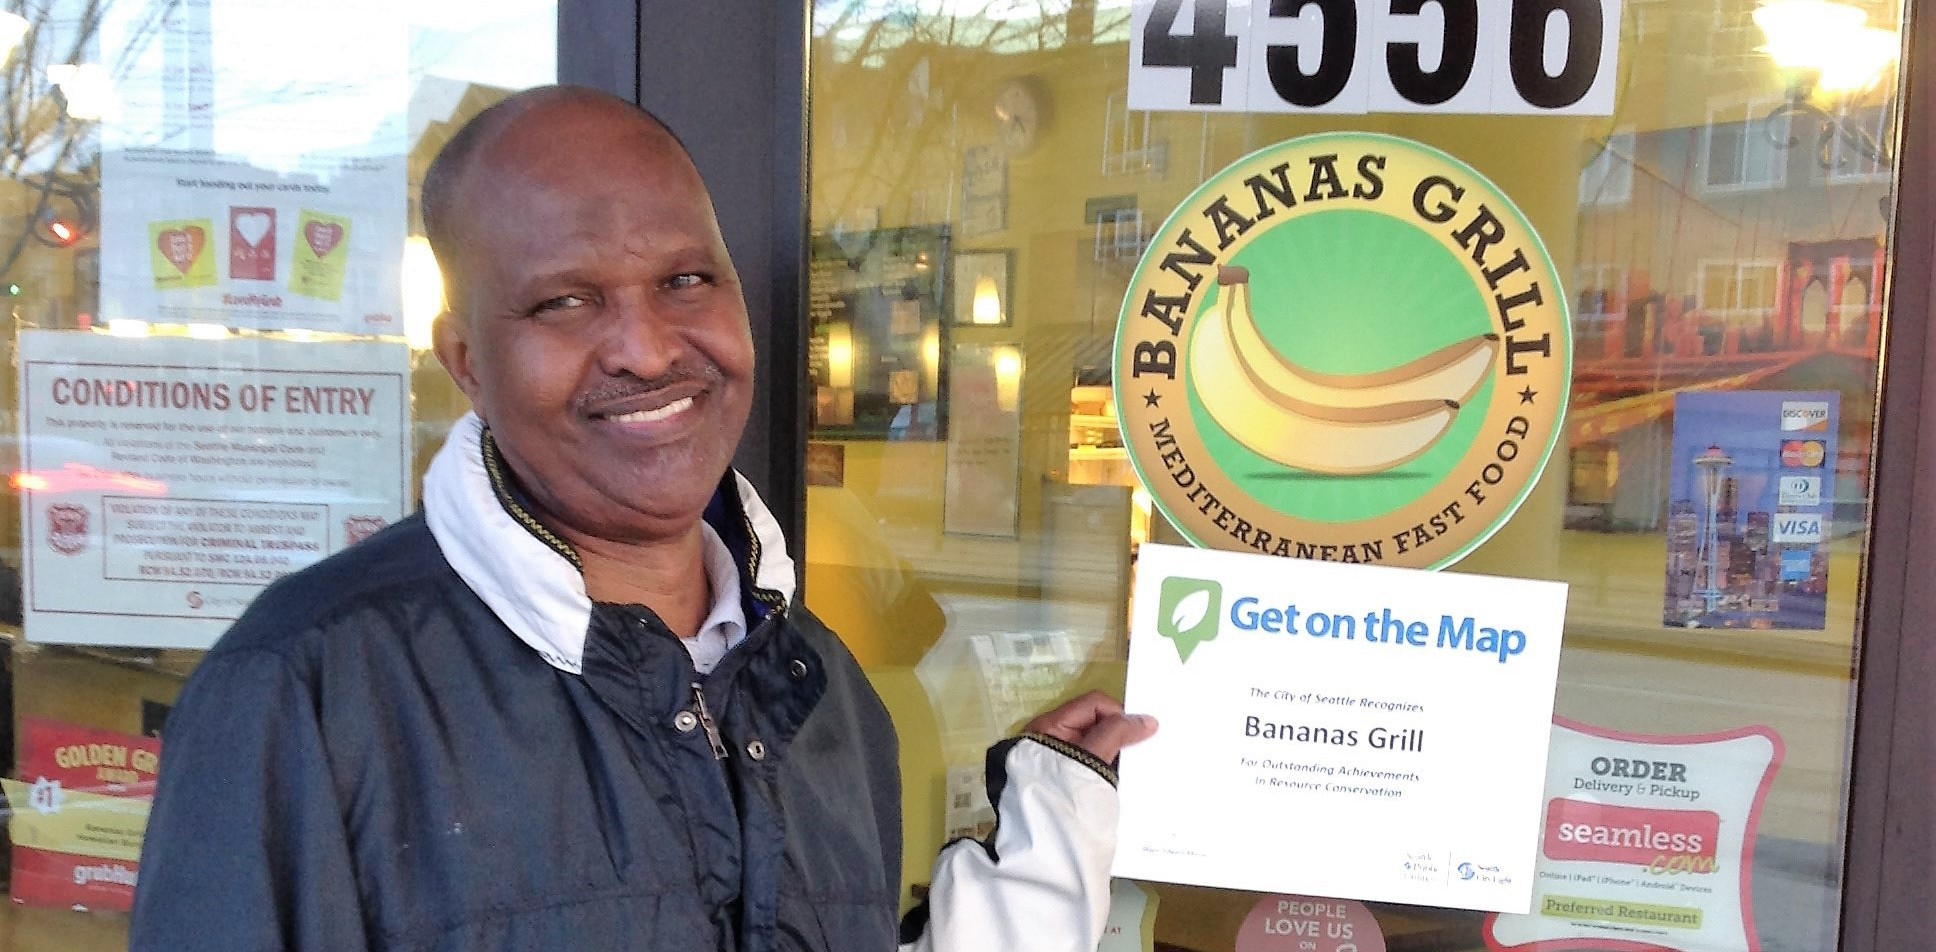 Warmth of Family and Great Food Served Up at Bananas Grill